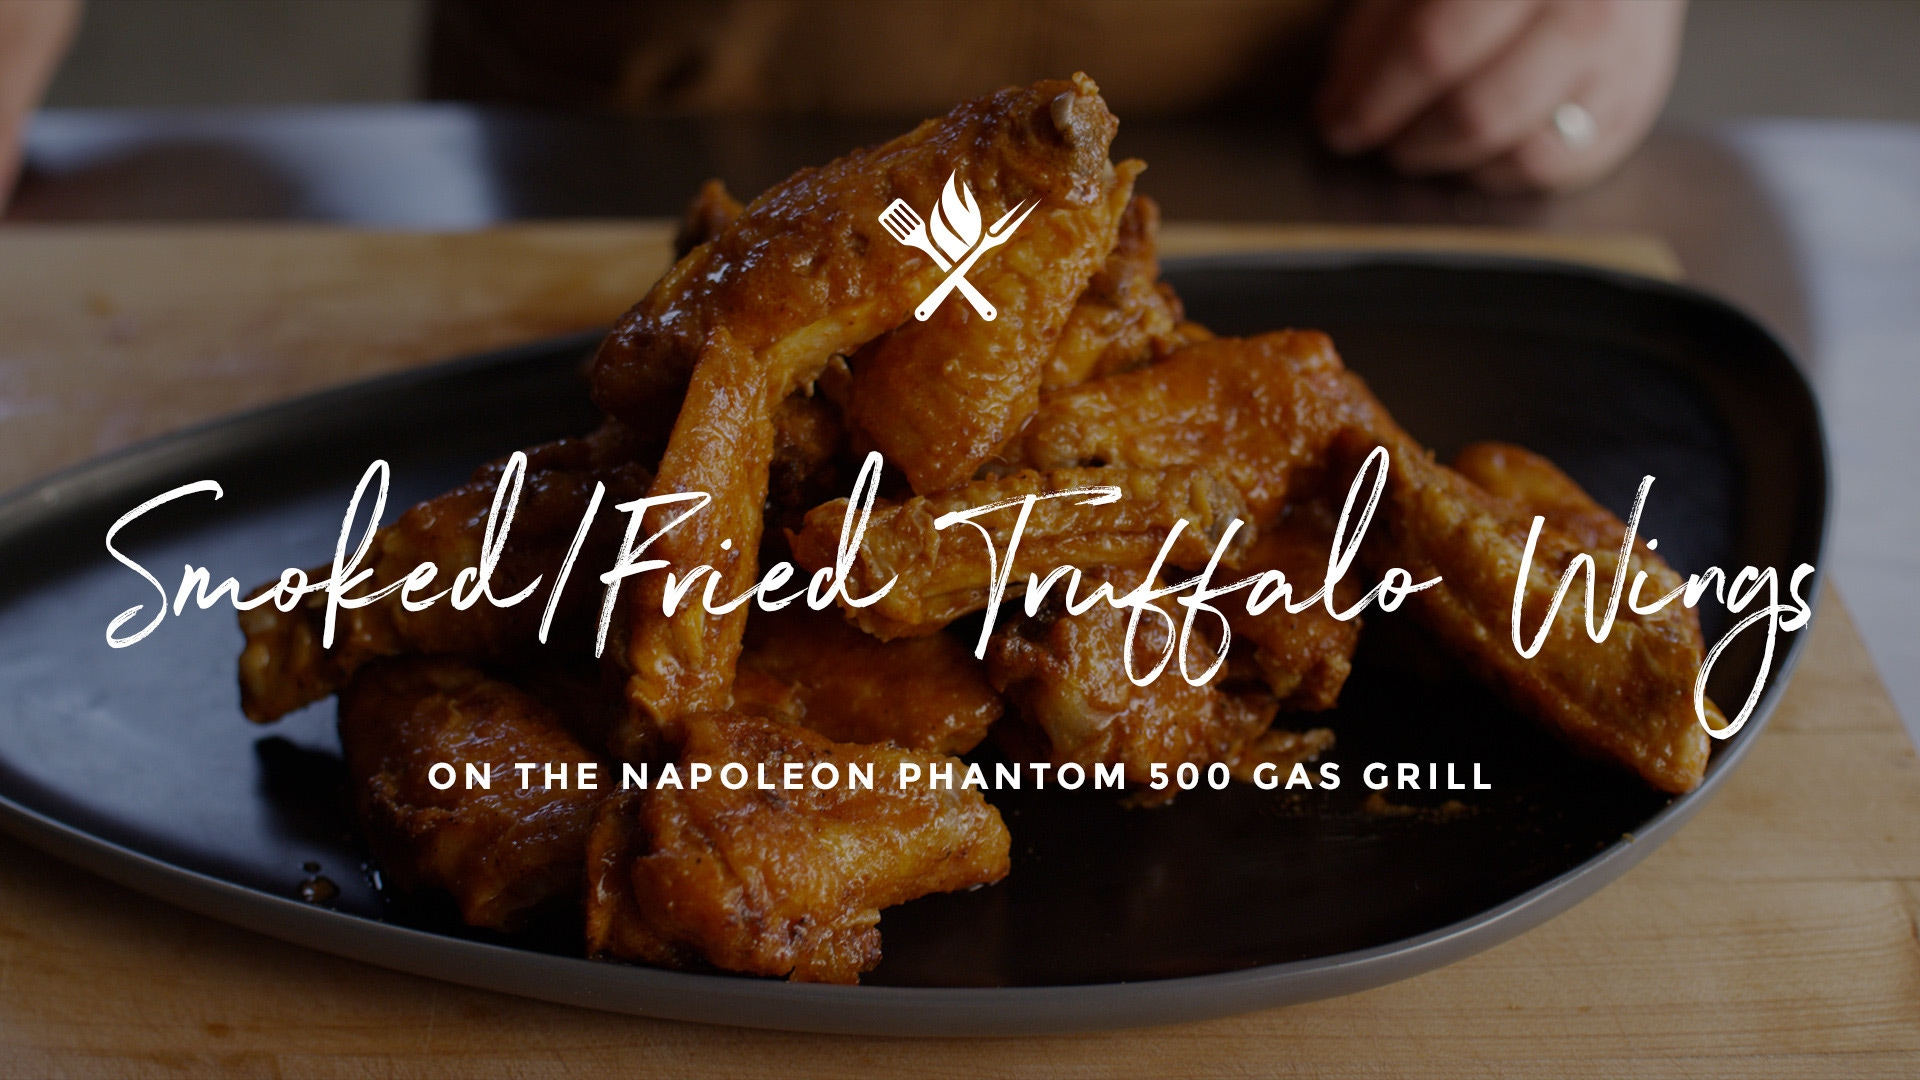 How to make Smoked Fried Truffalo Wings